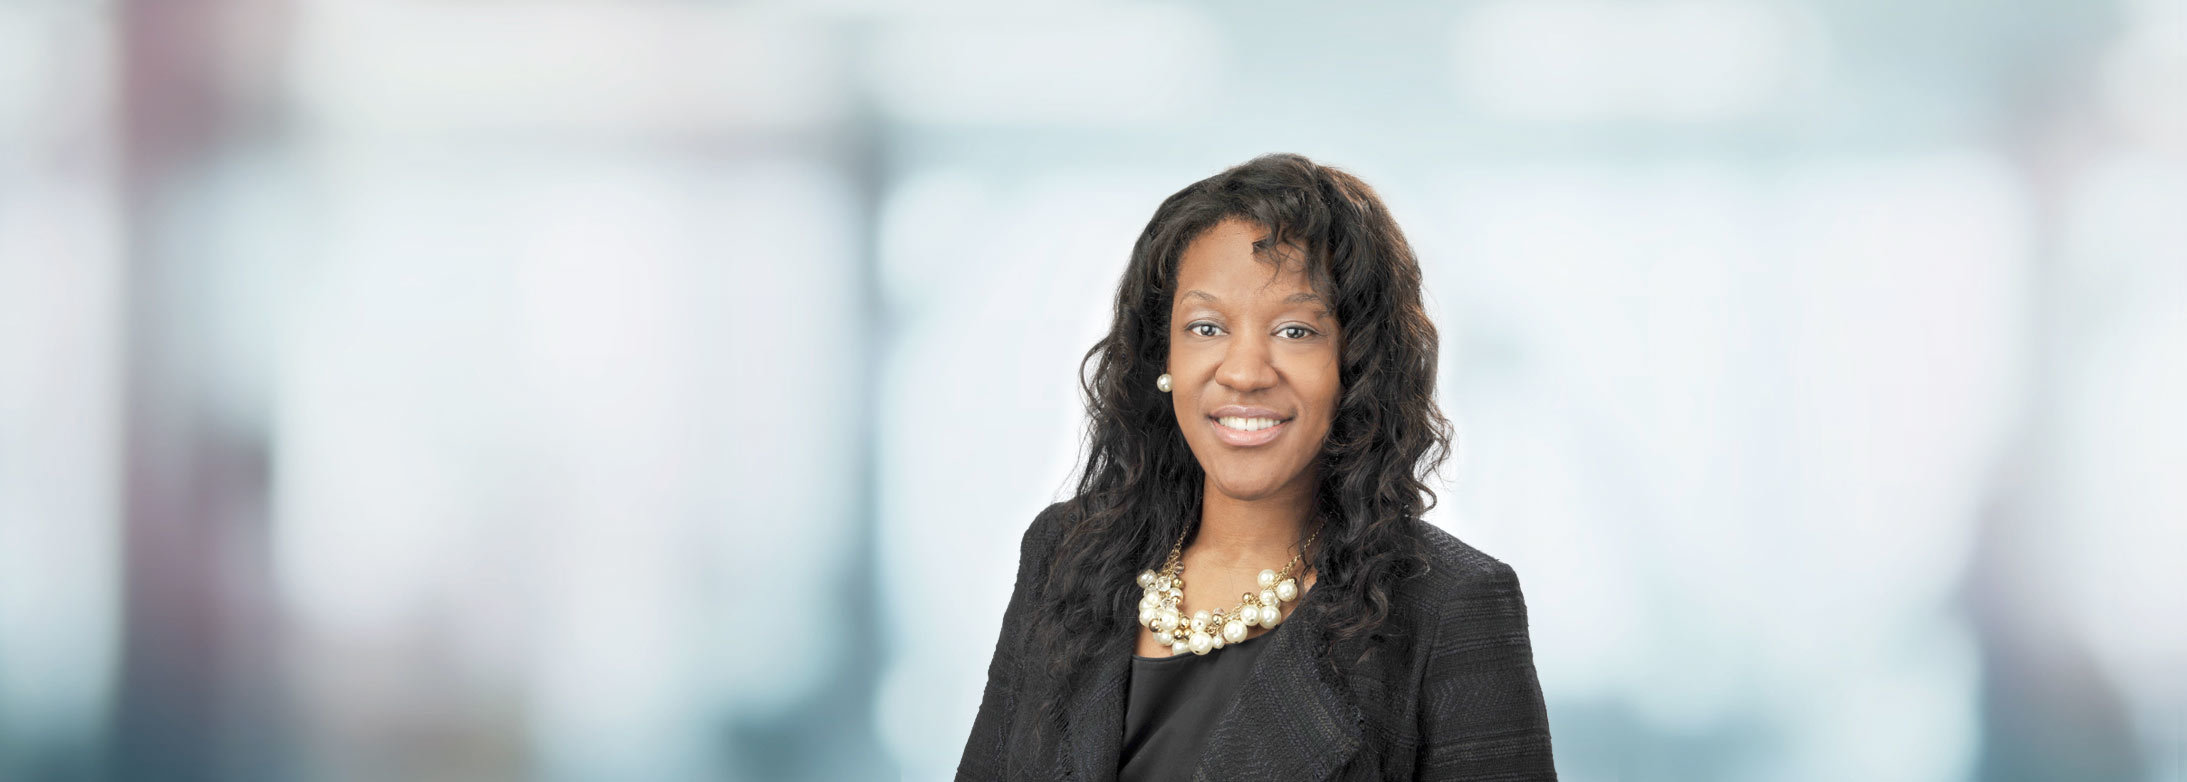 Yamisi James, Swift, Currie, McGhee & Hiers, LLP Photo